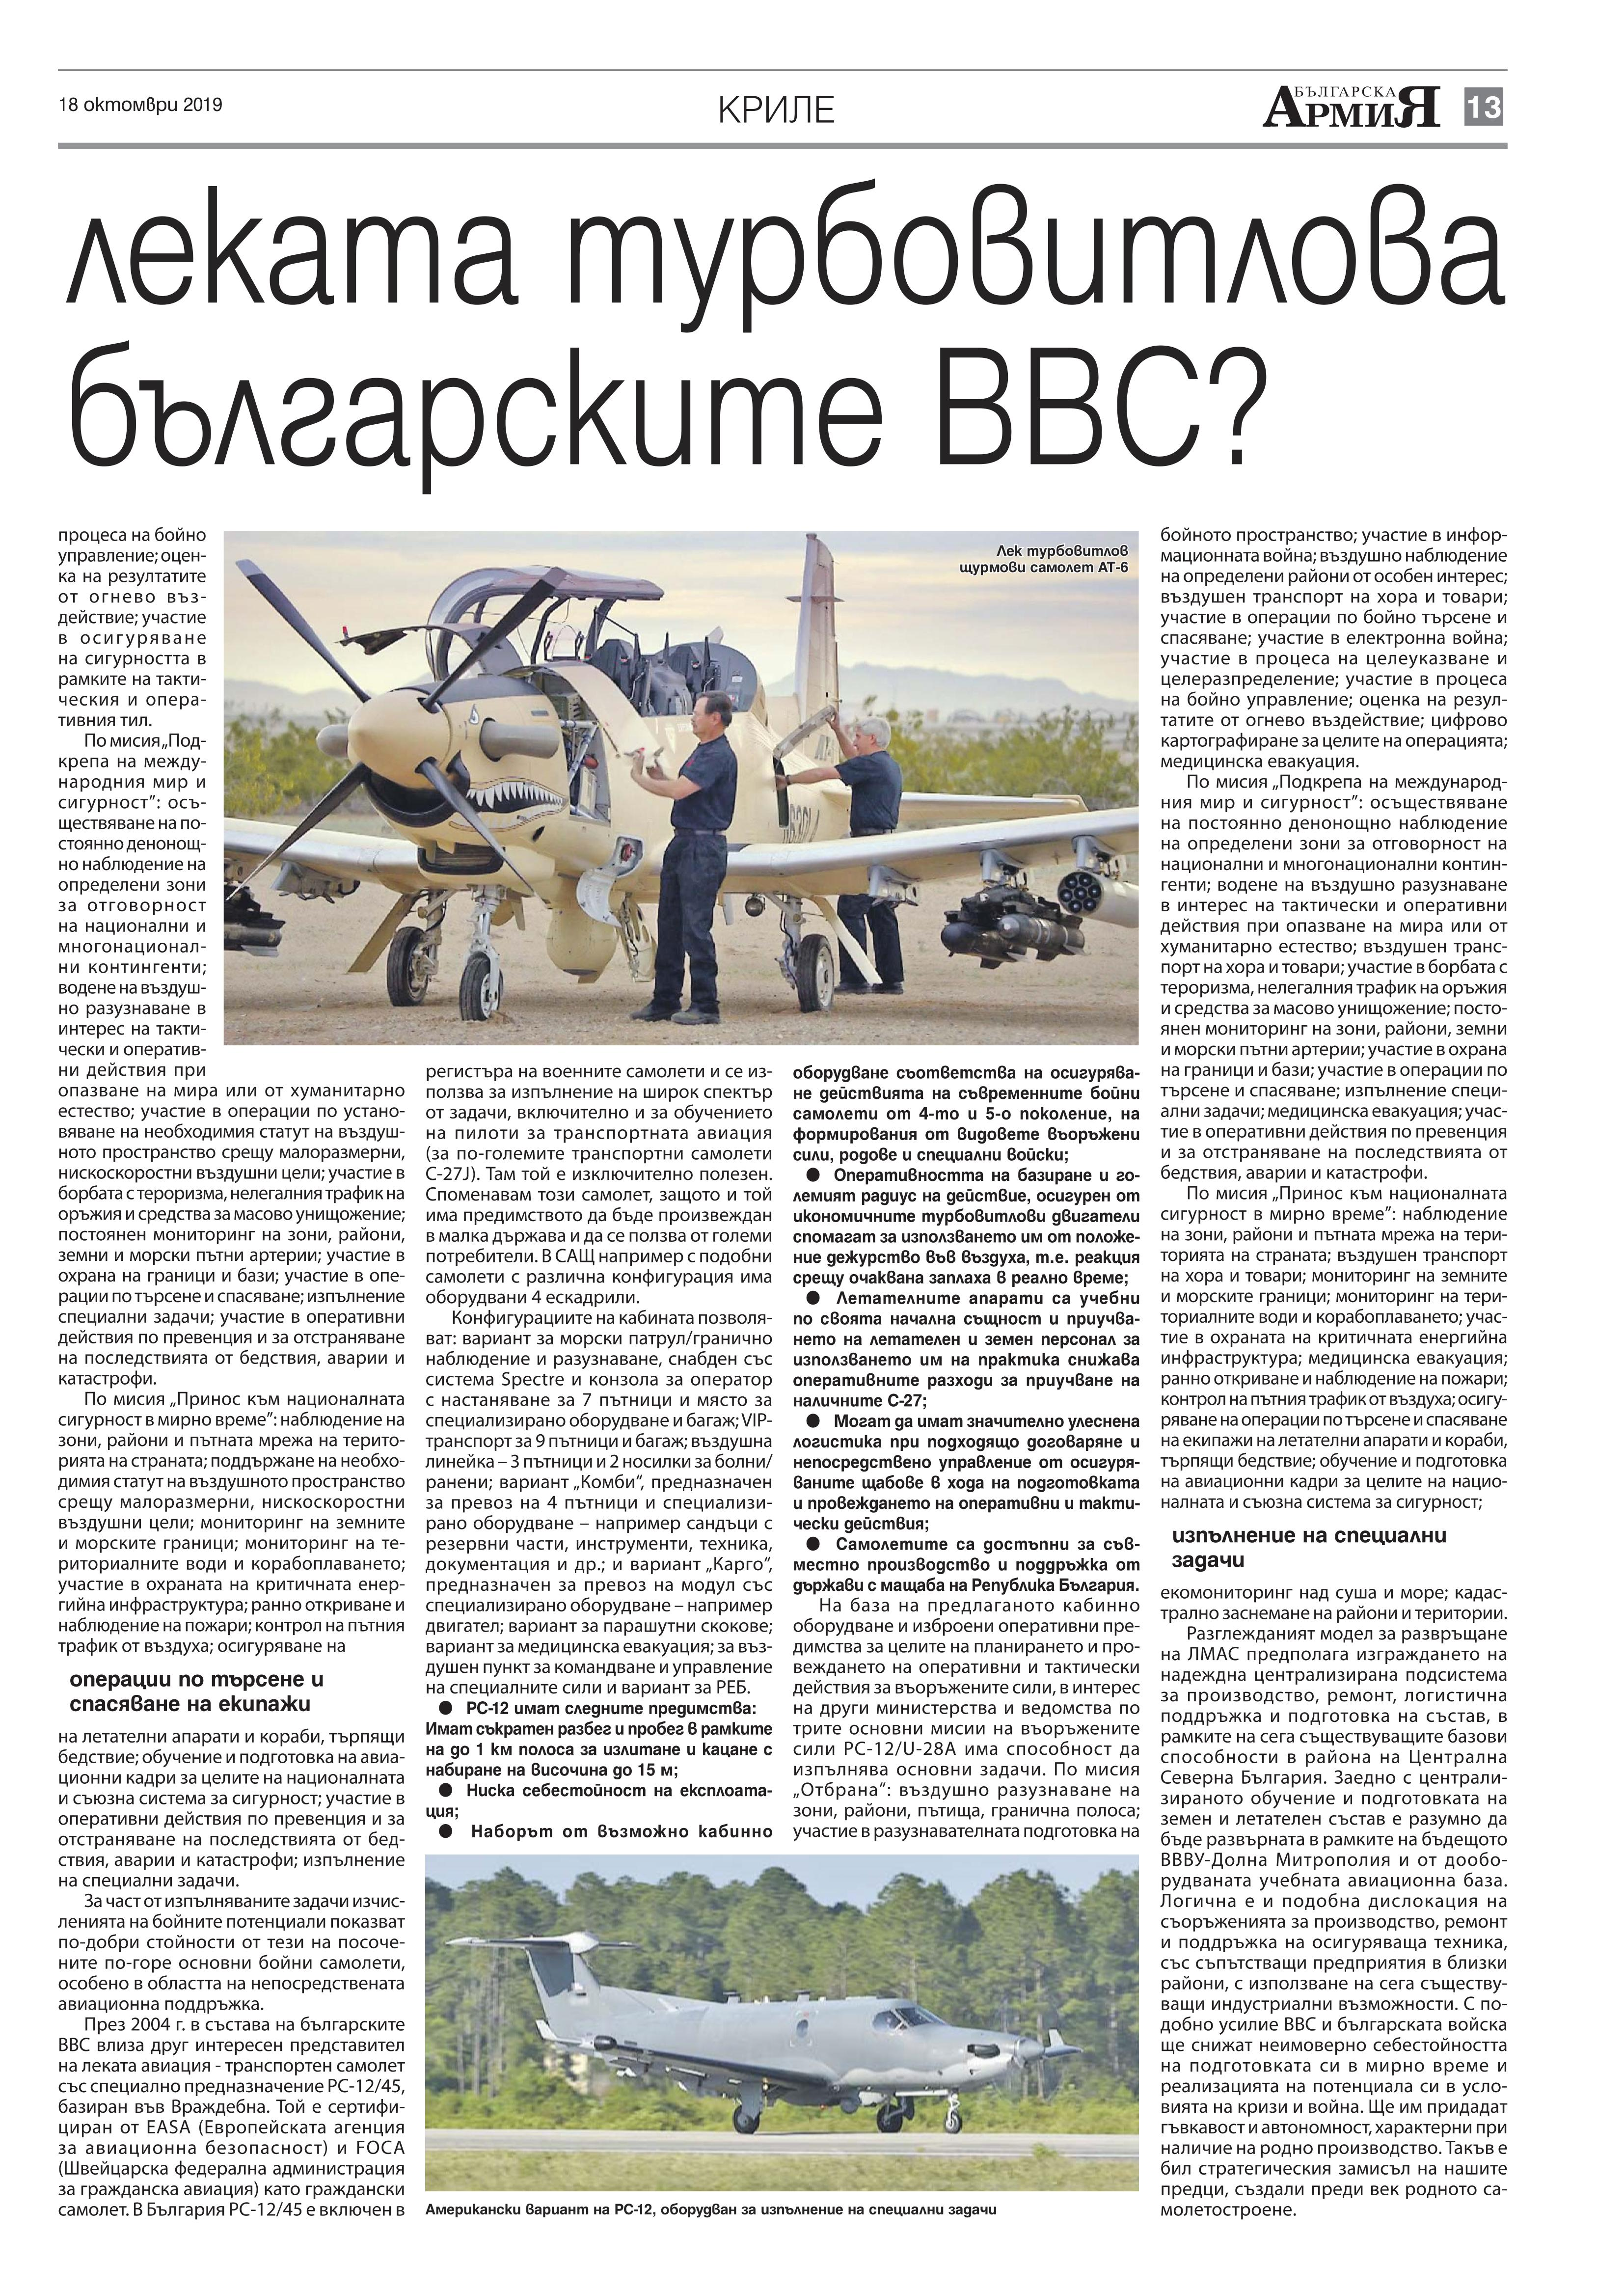 https://armymedia.bg/wp-content/uploads/2015/06/13.page1_-112.jpg